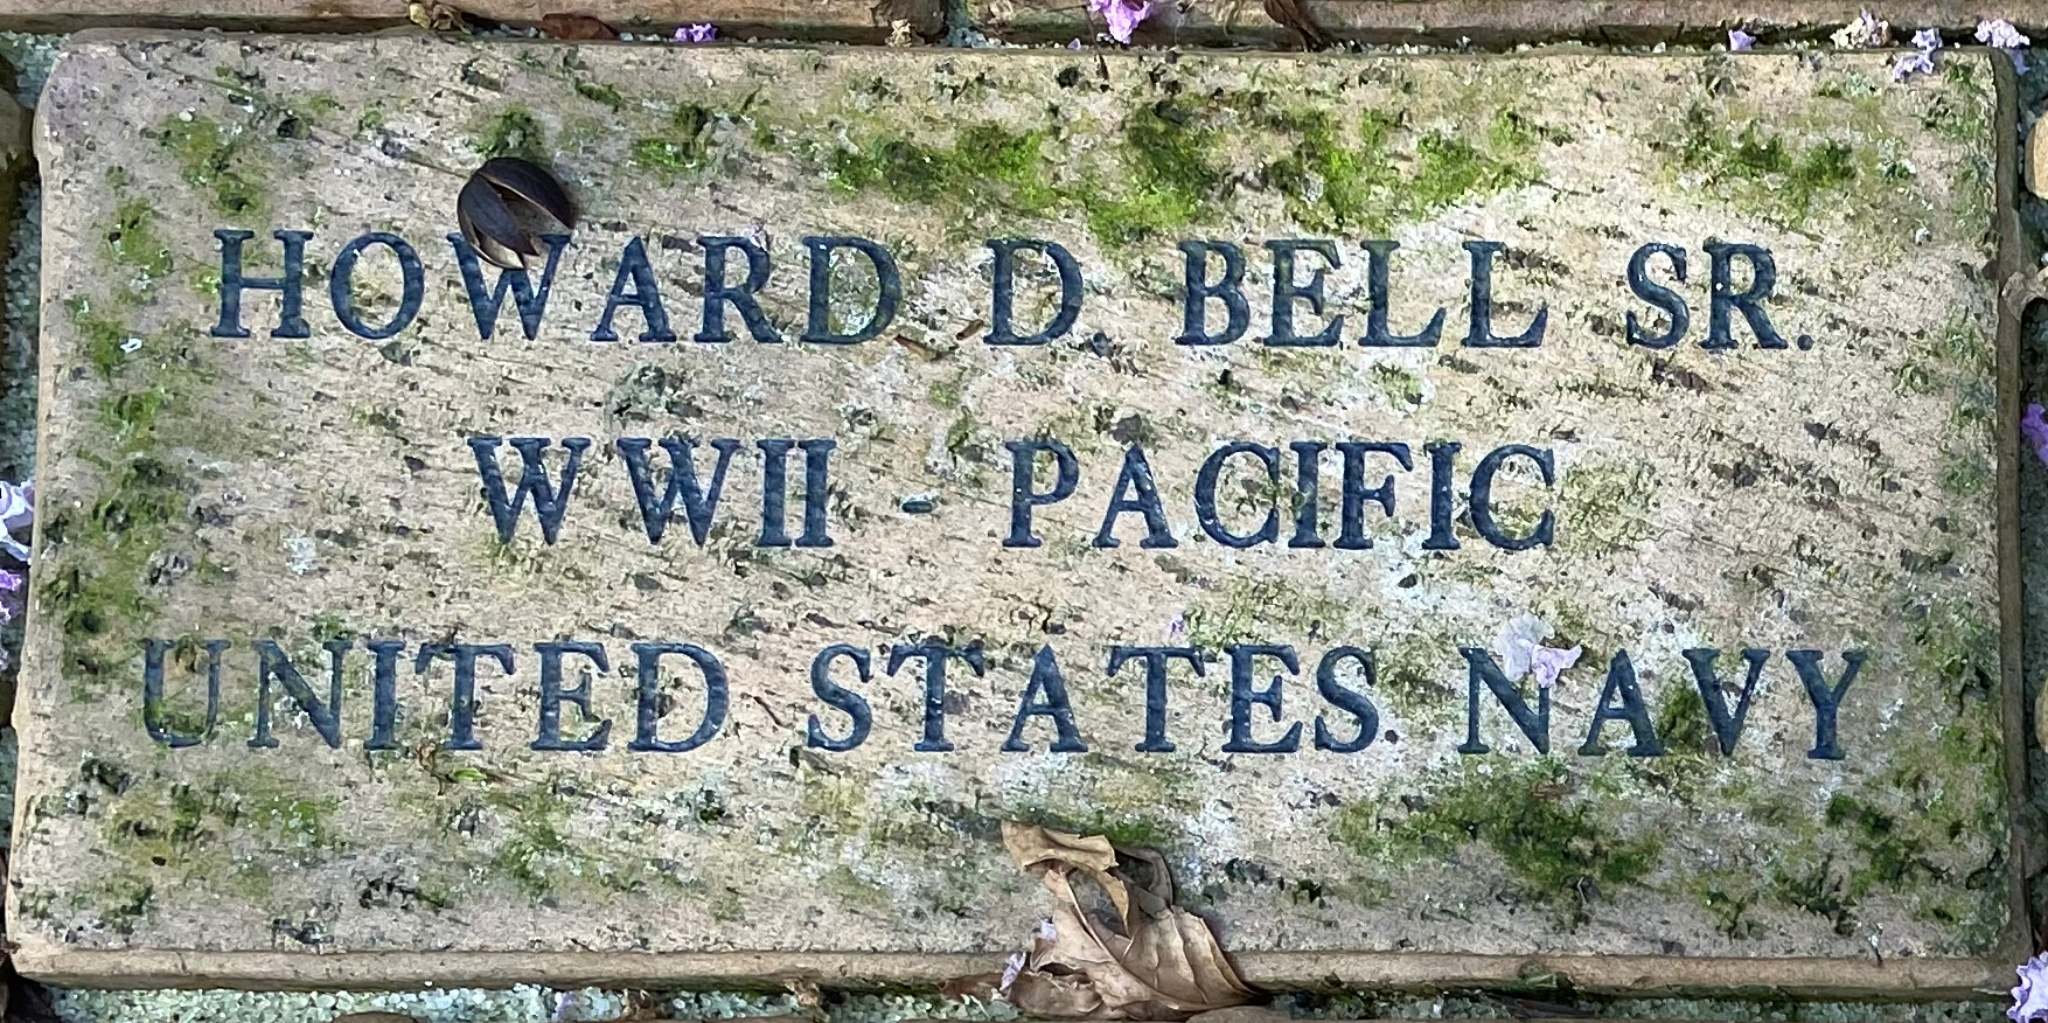 HOWARD D. BELL, SR WWII –PACIFIC UNITED STATES NAVY